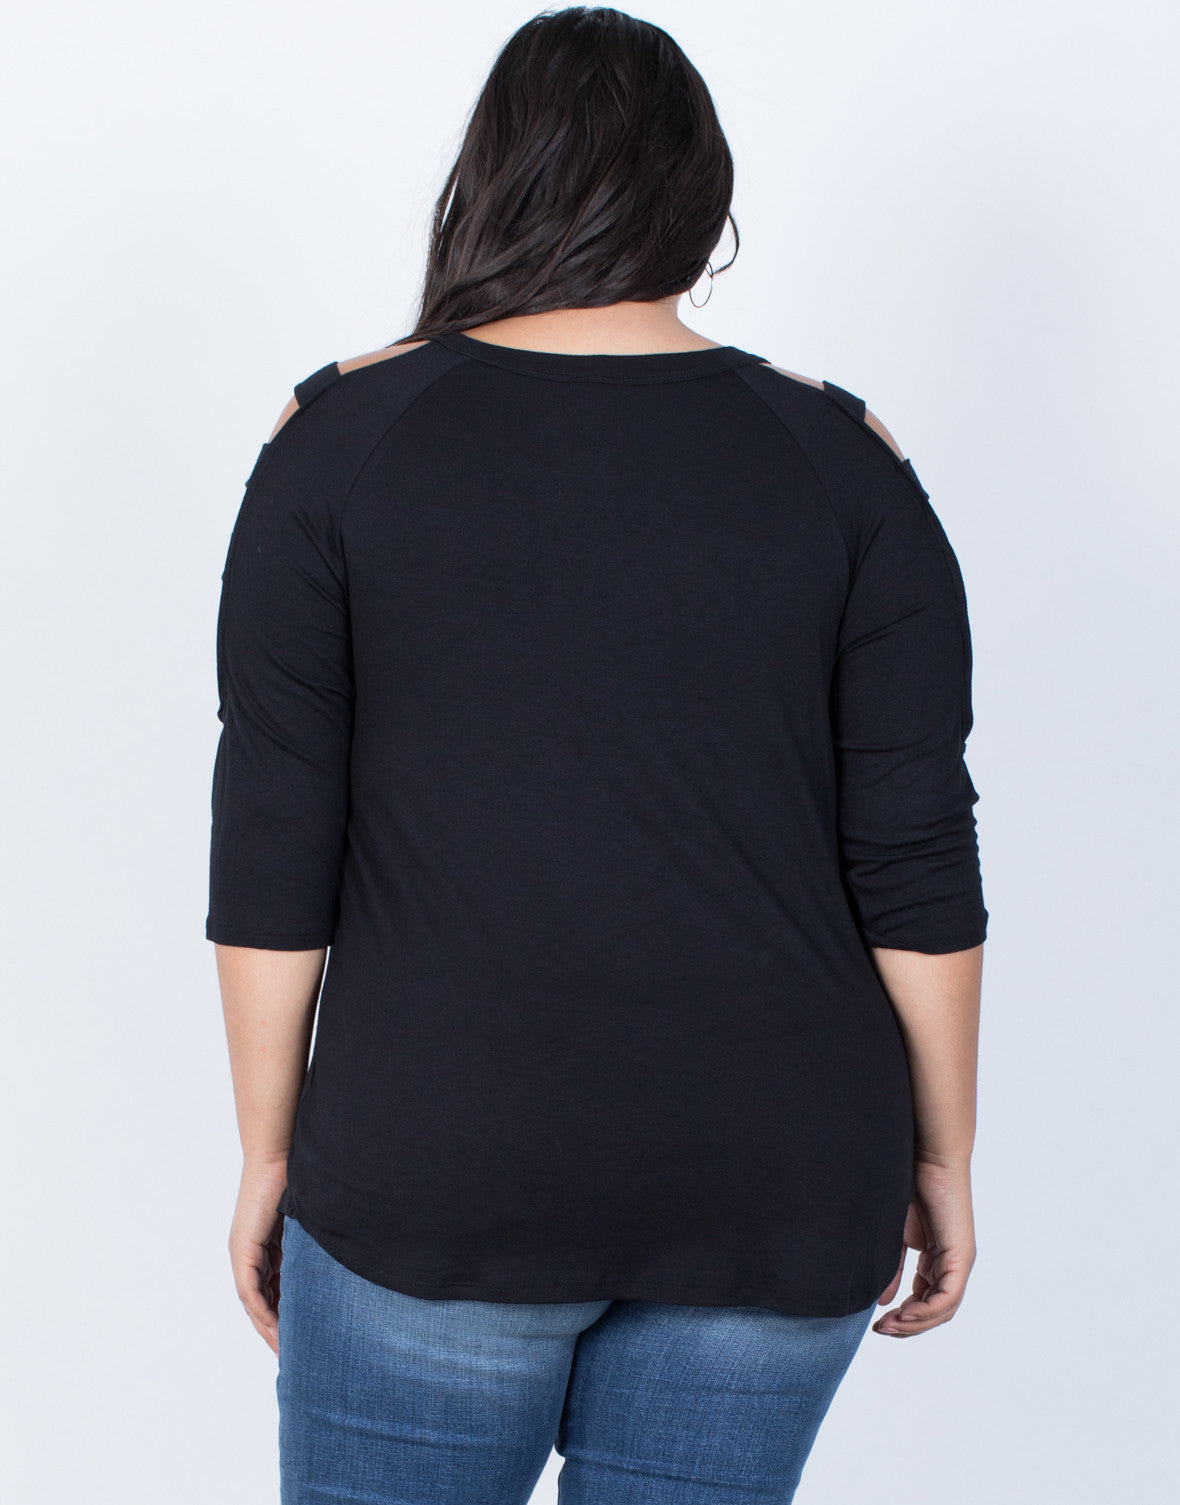 Black Plus Size Strappy Cut Out Top - Back View